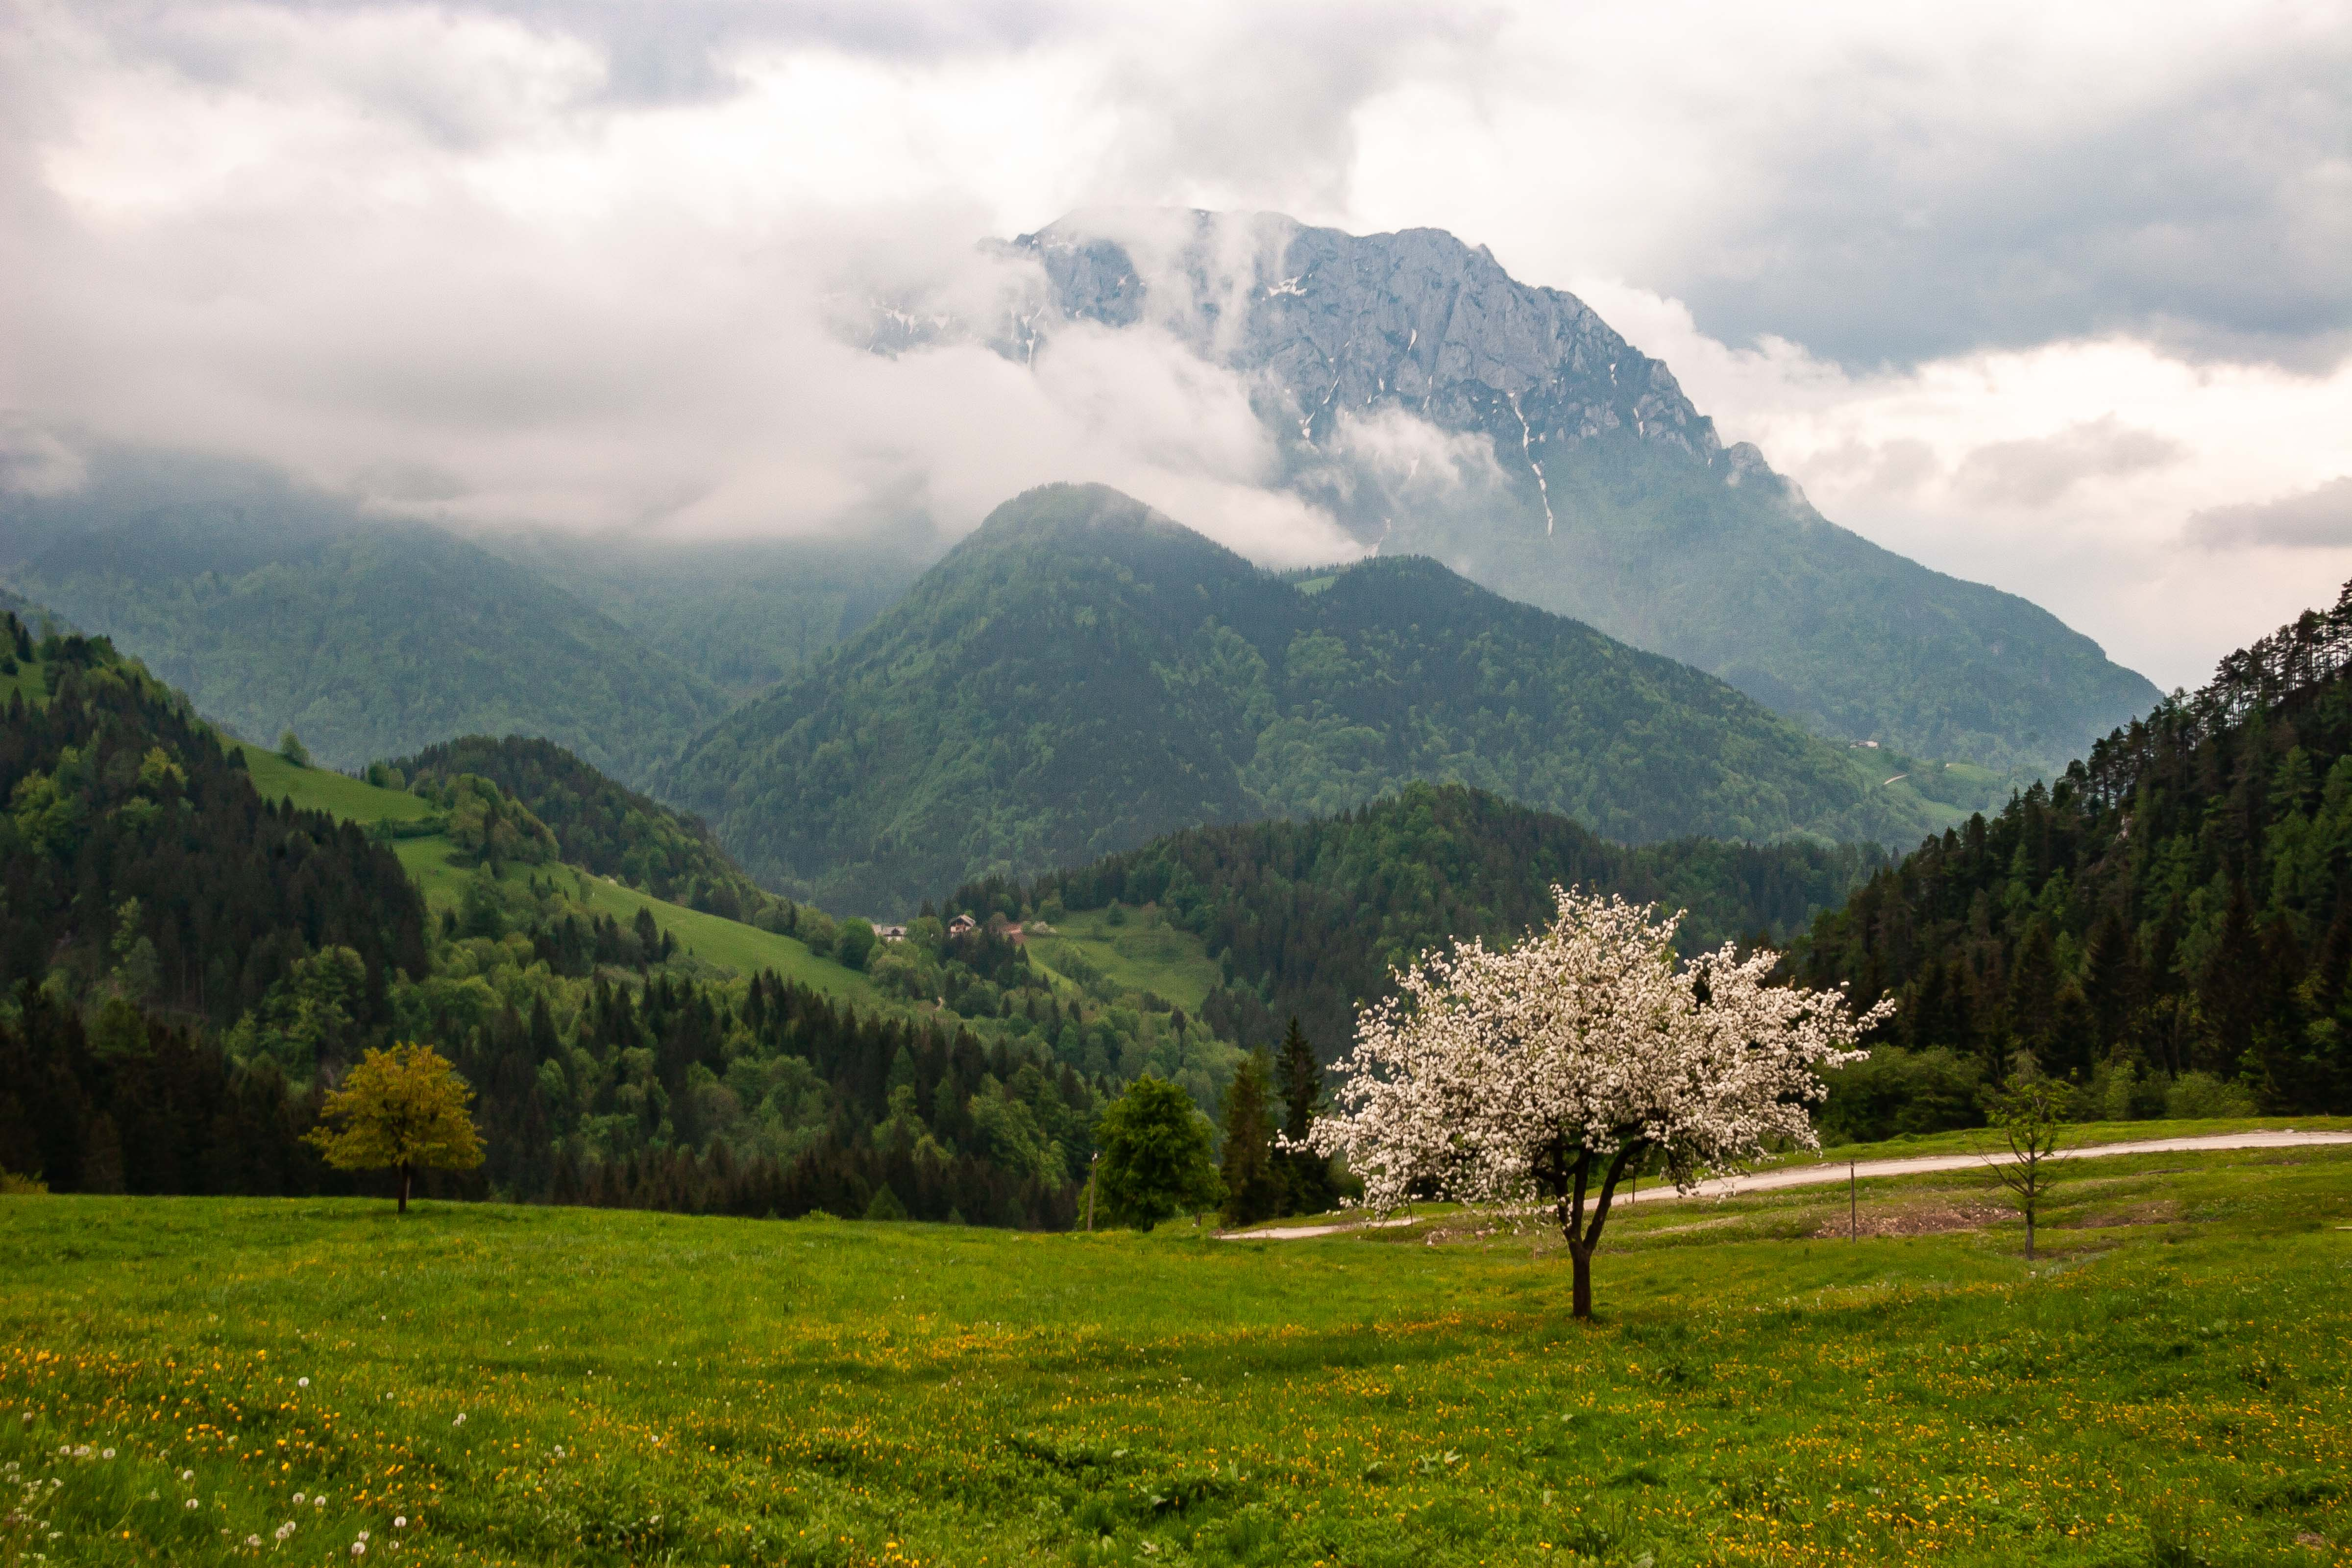 Slovenia, Solcava Prov, Blossoming Tree And Mountain, 2006, IMG 8418